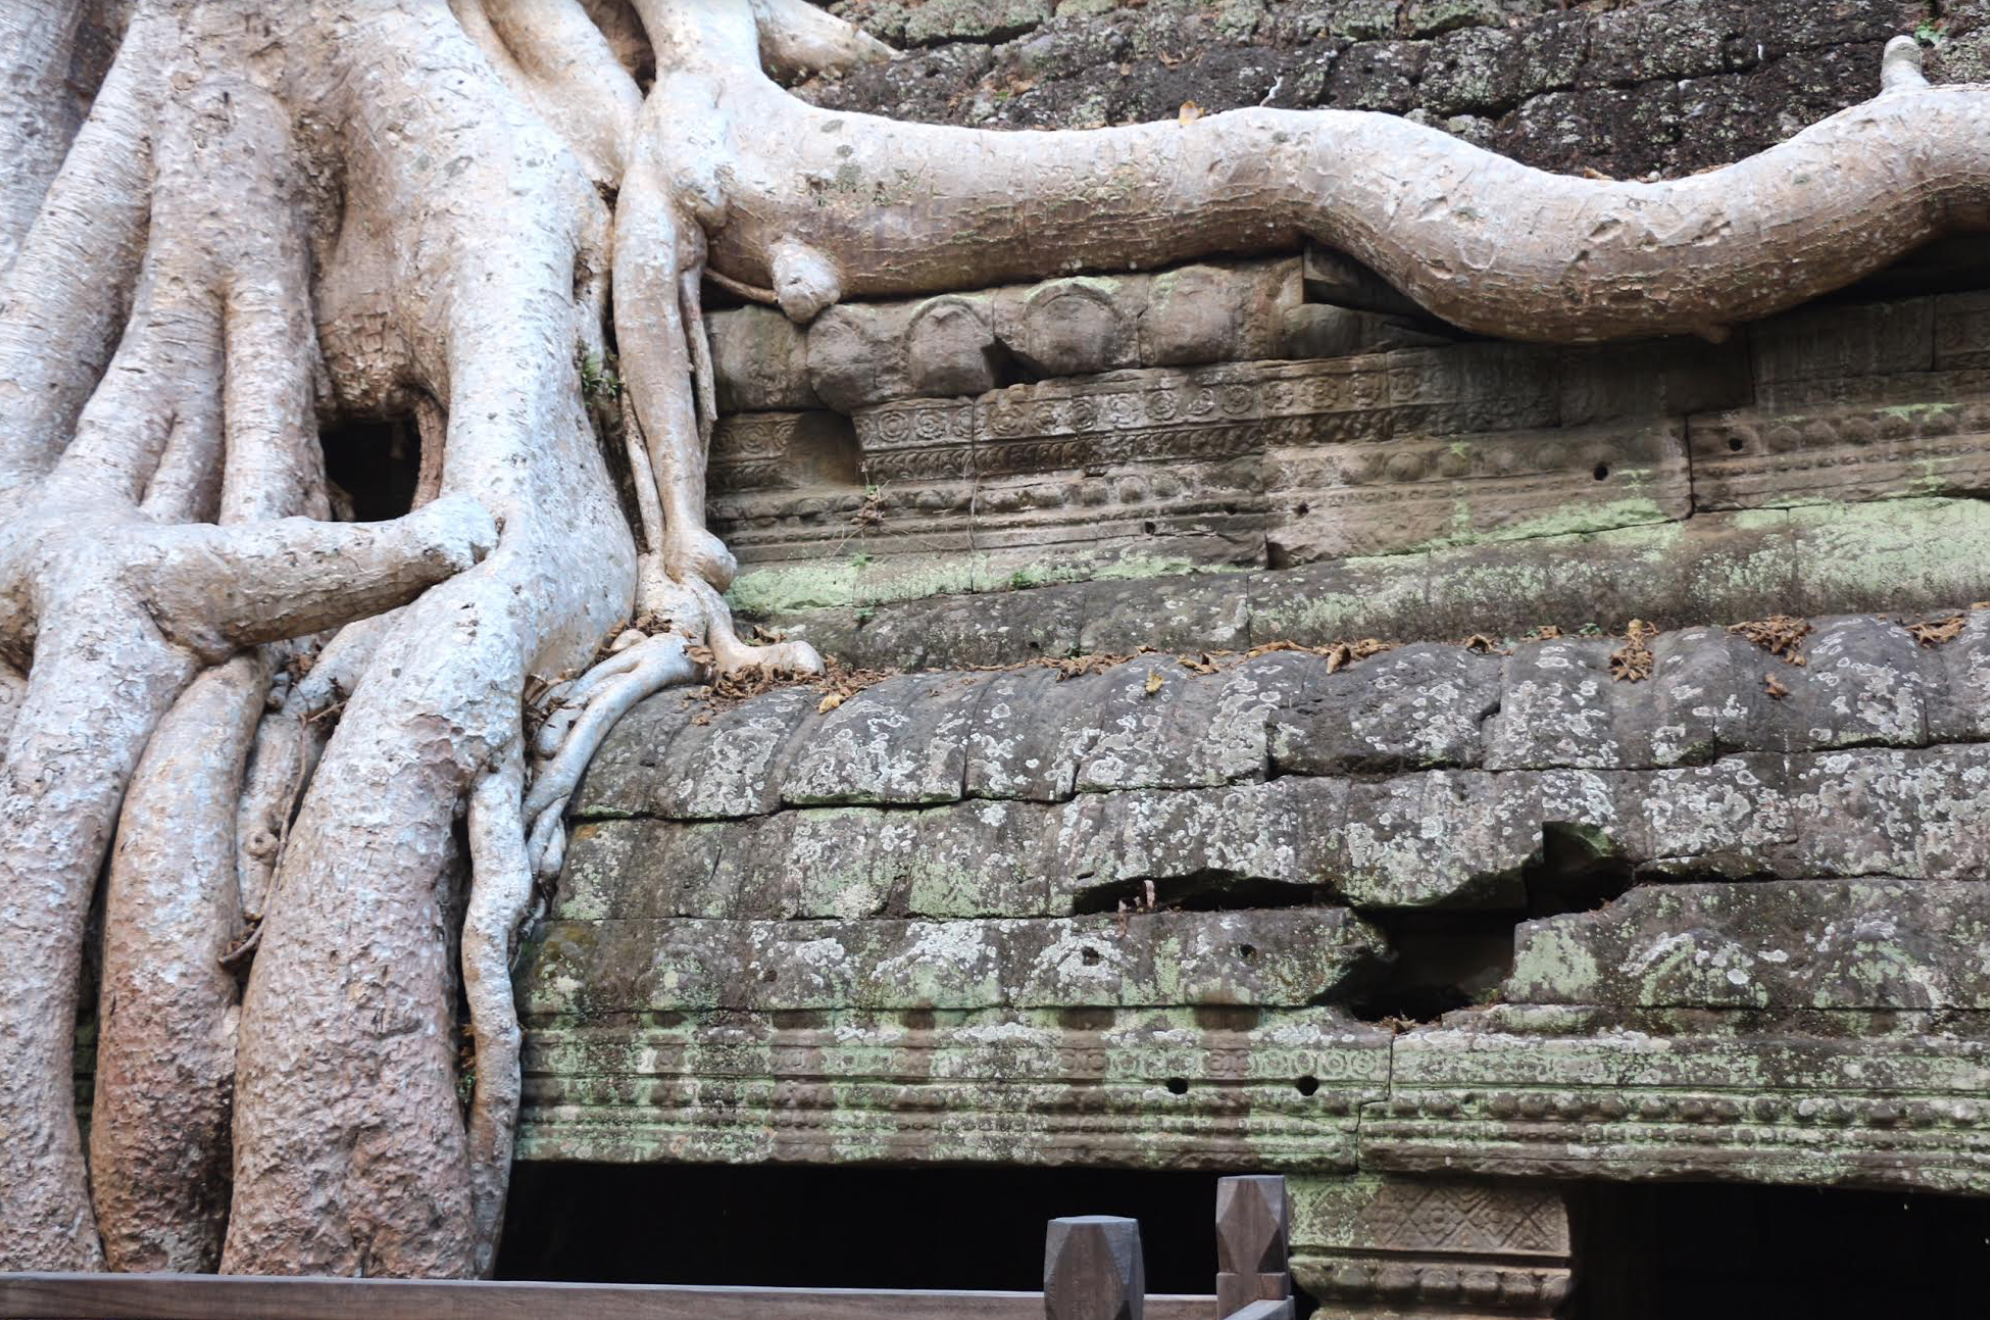 Overgrown tree roots outside fo Angkor Wat